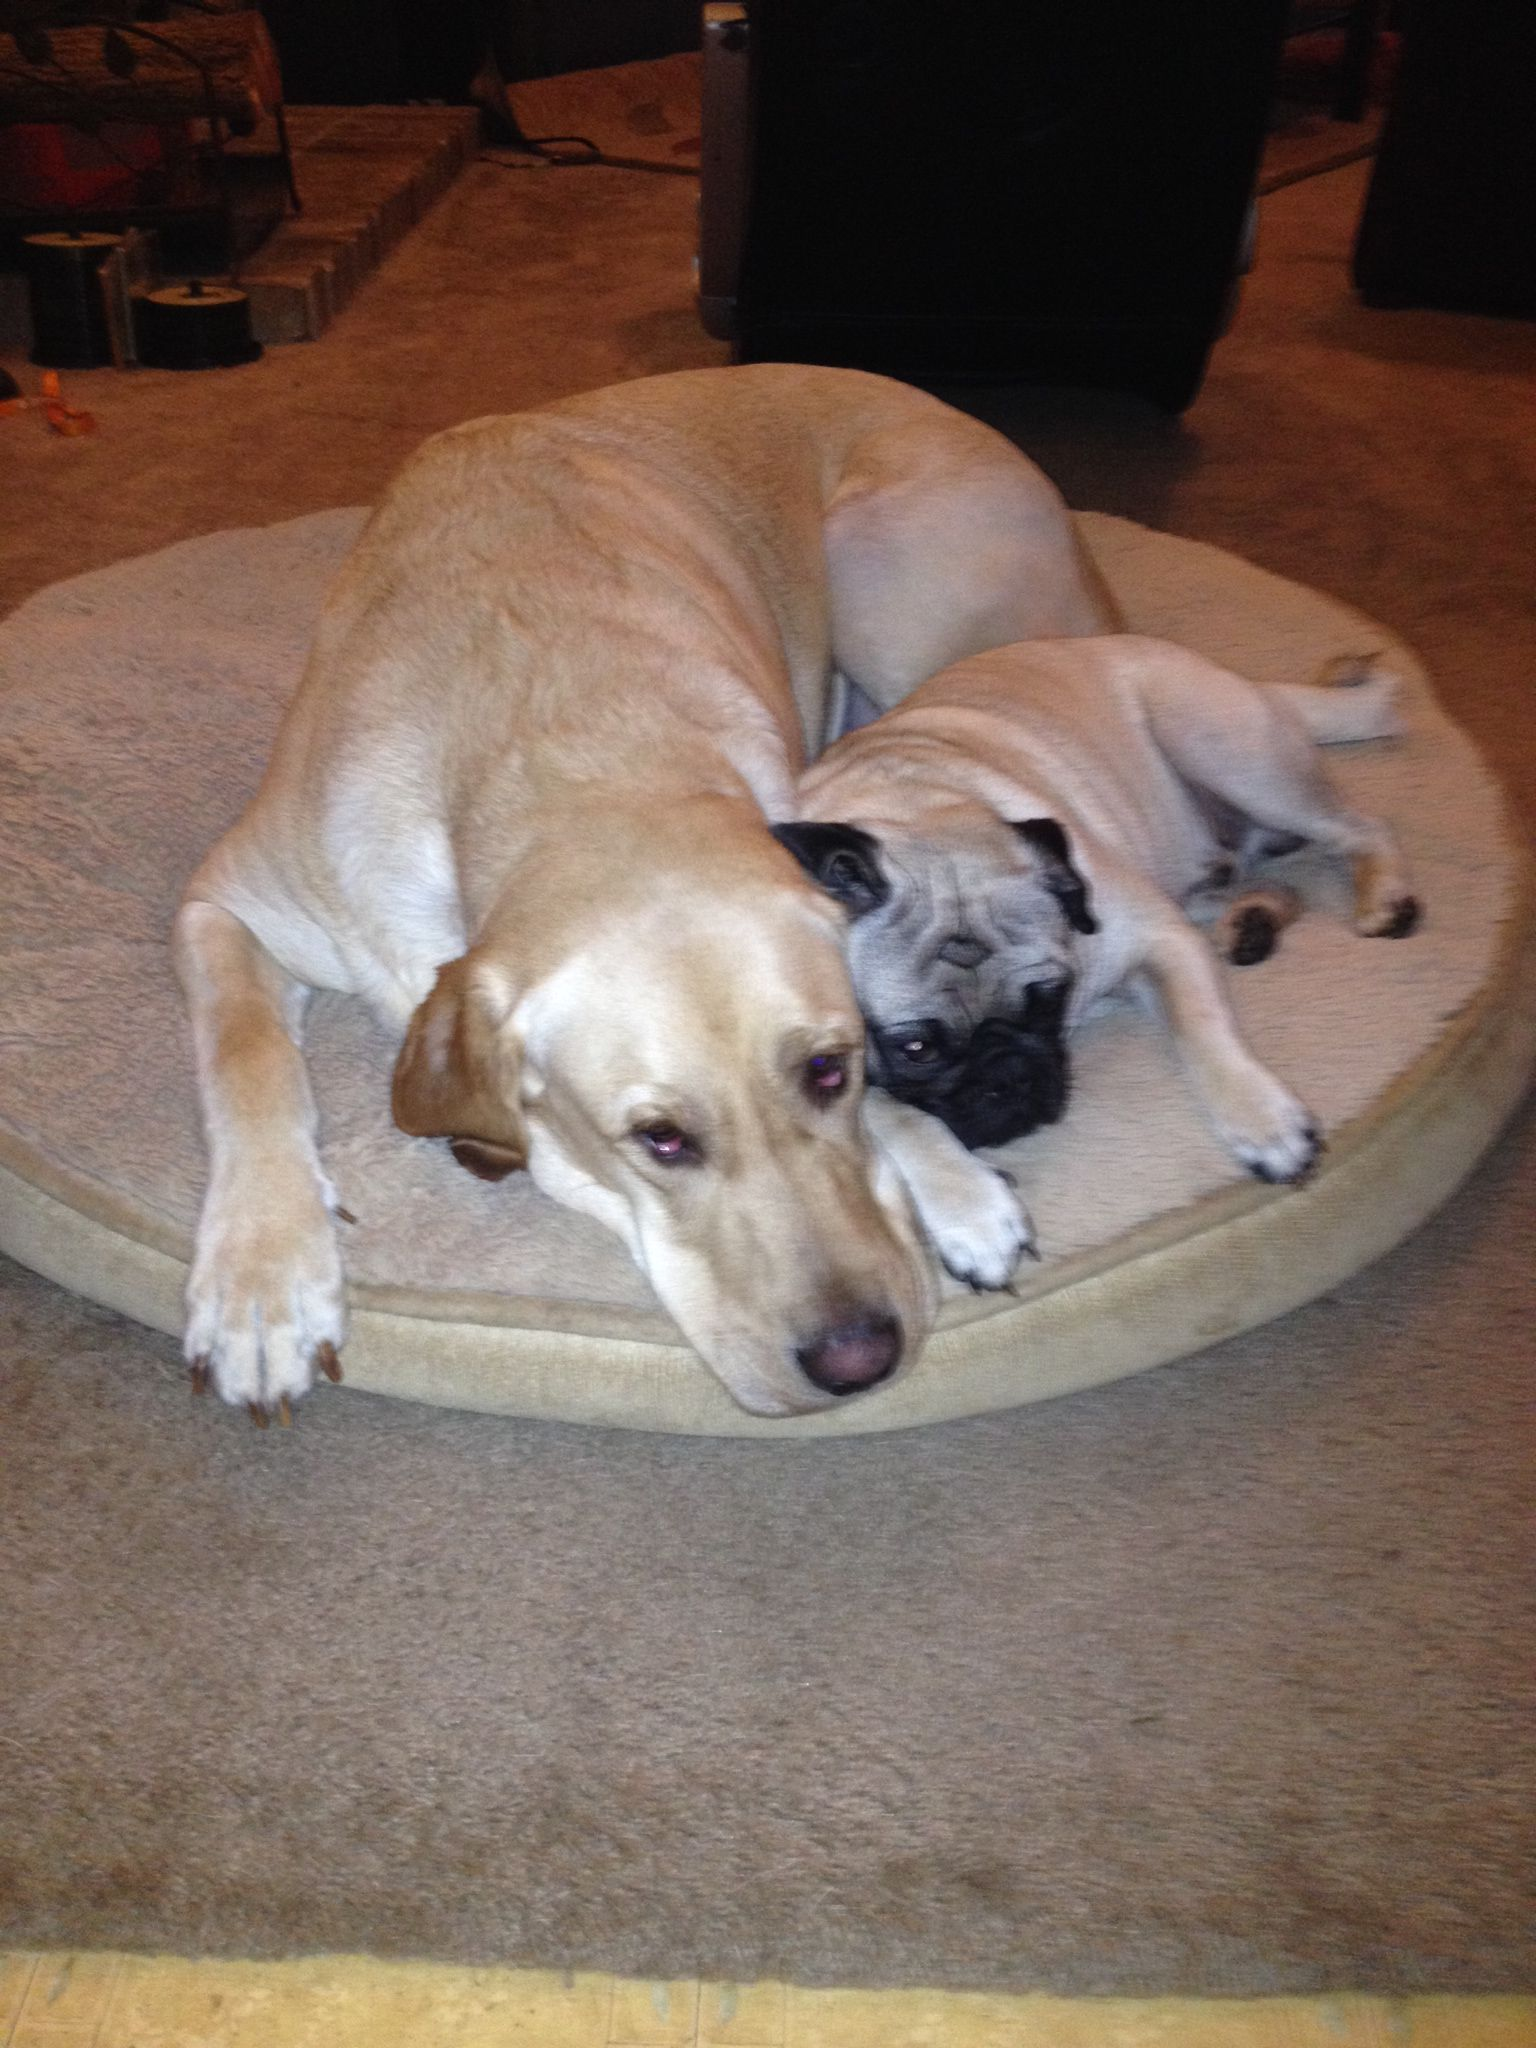 They love each other best buds for ever <3